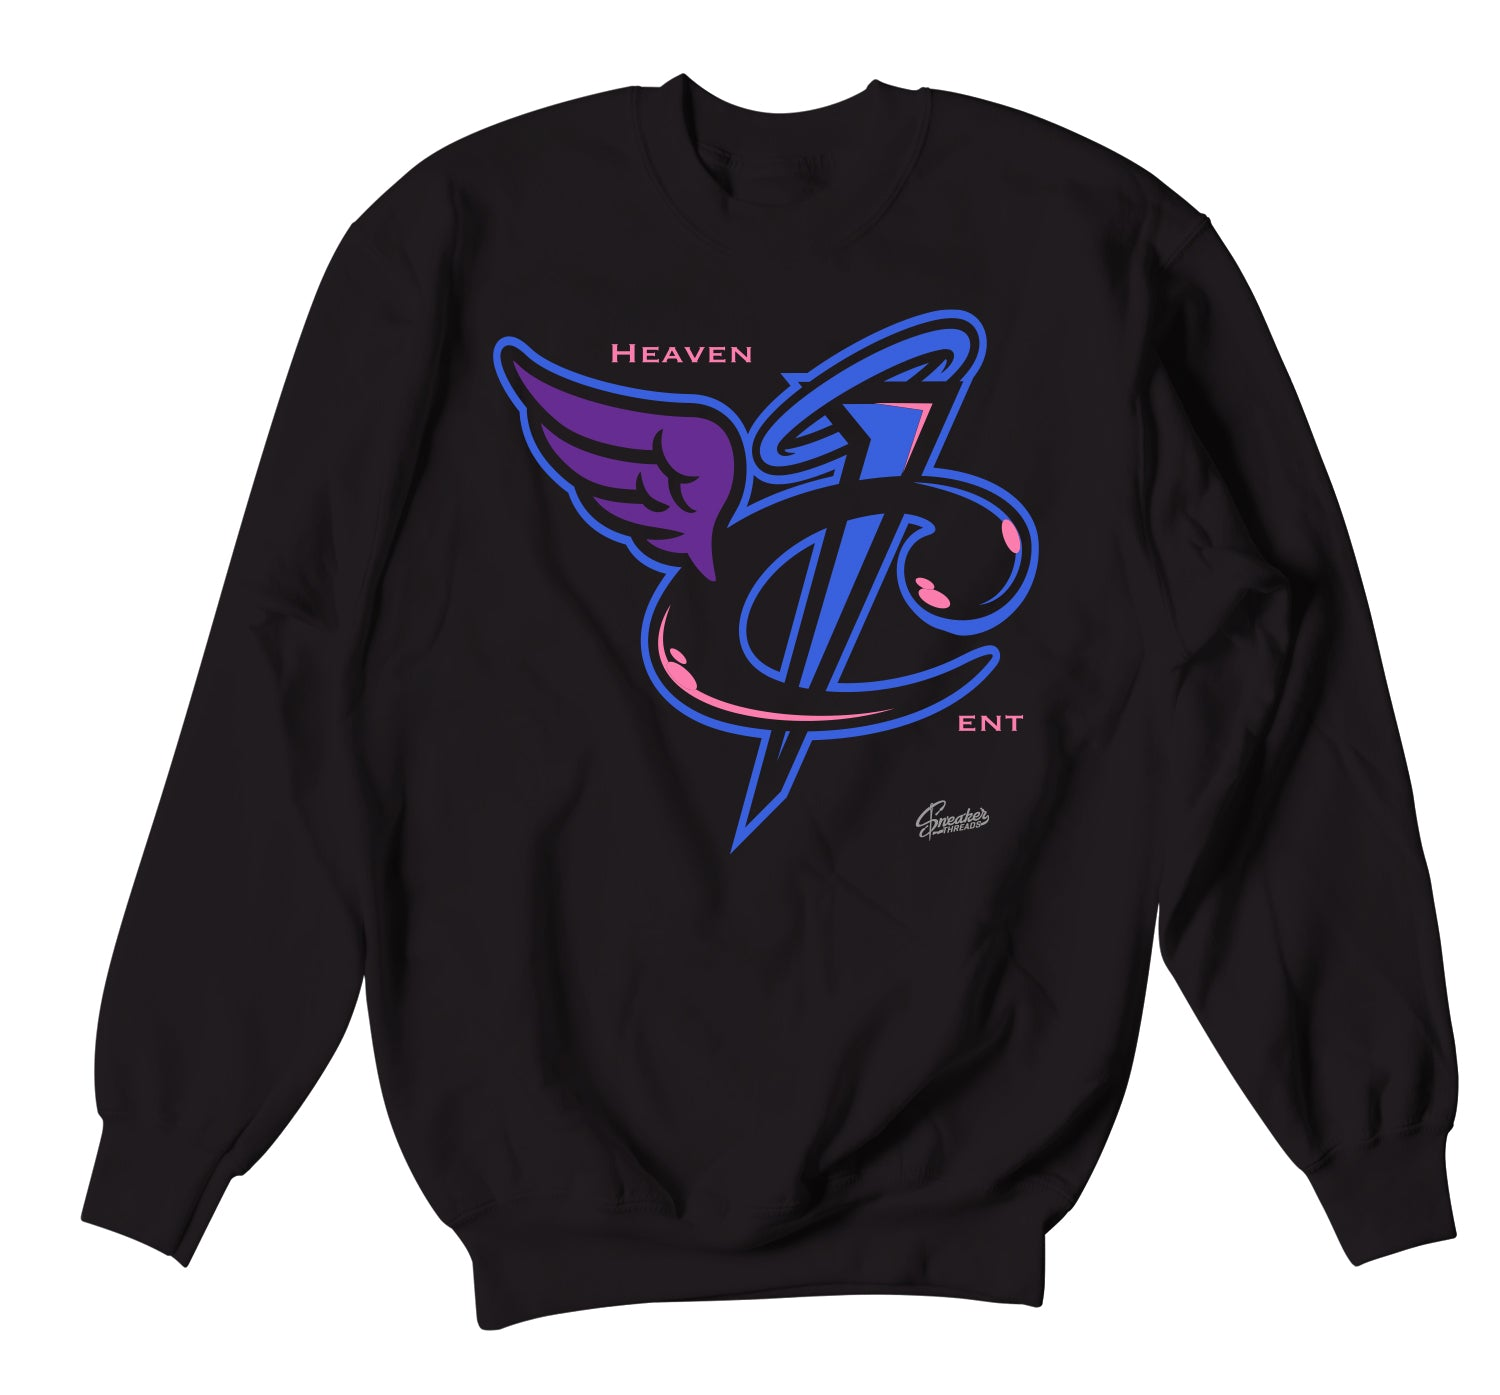 Crewneck collection to match the foamposite gradient sole